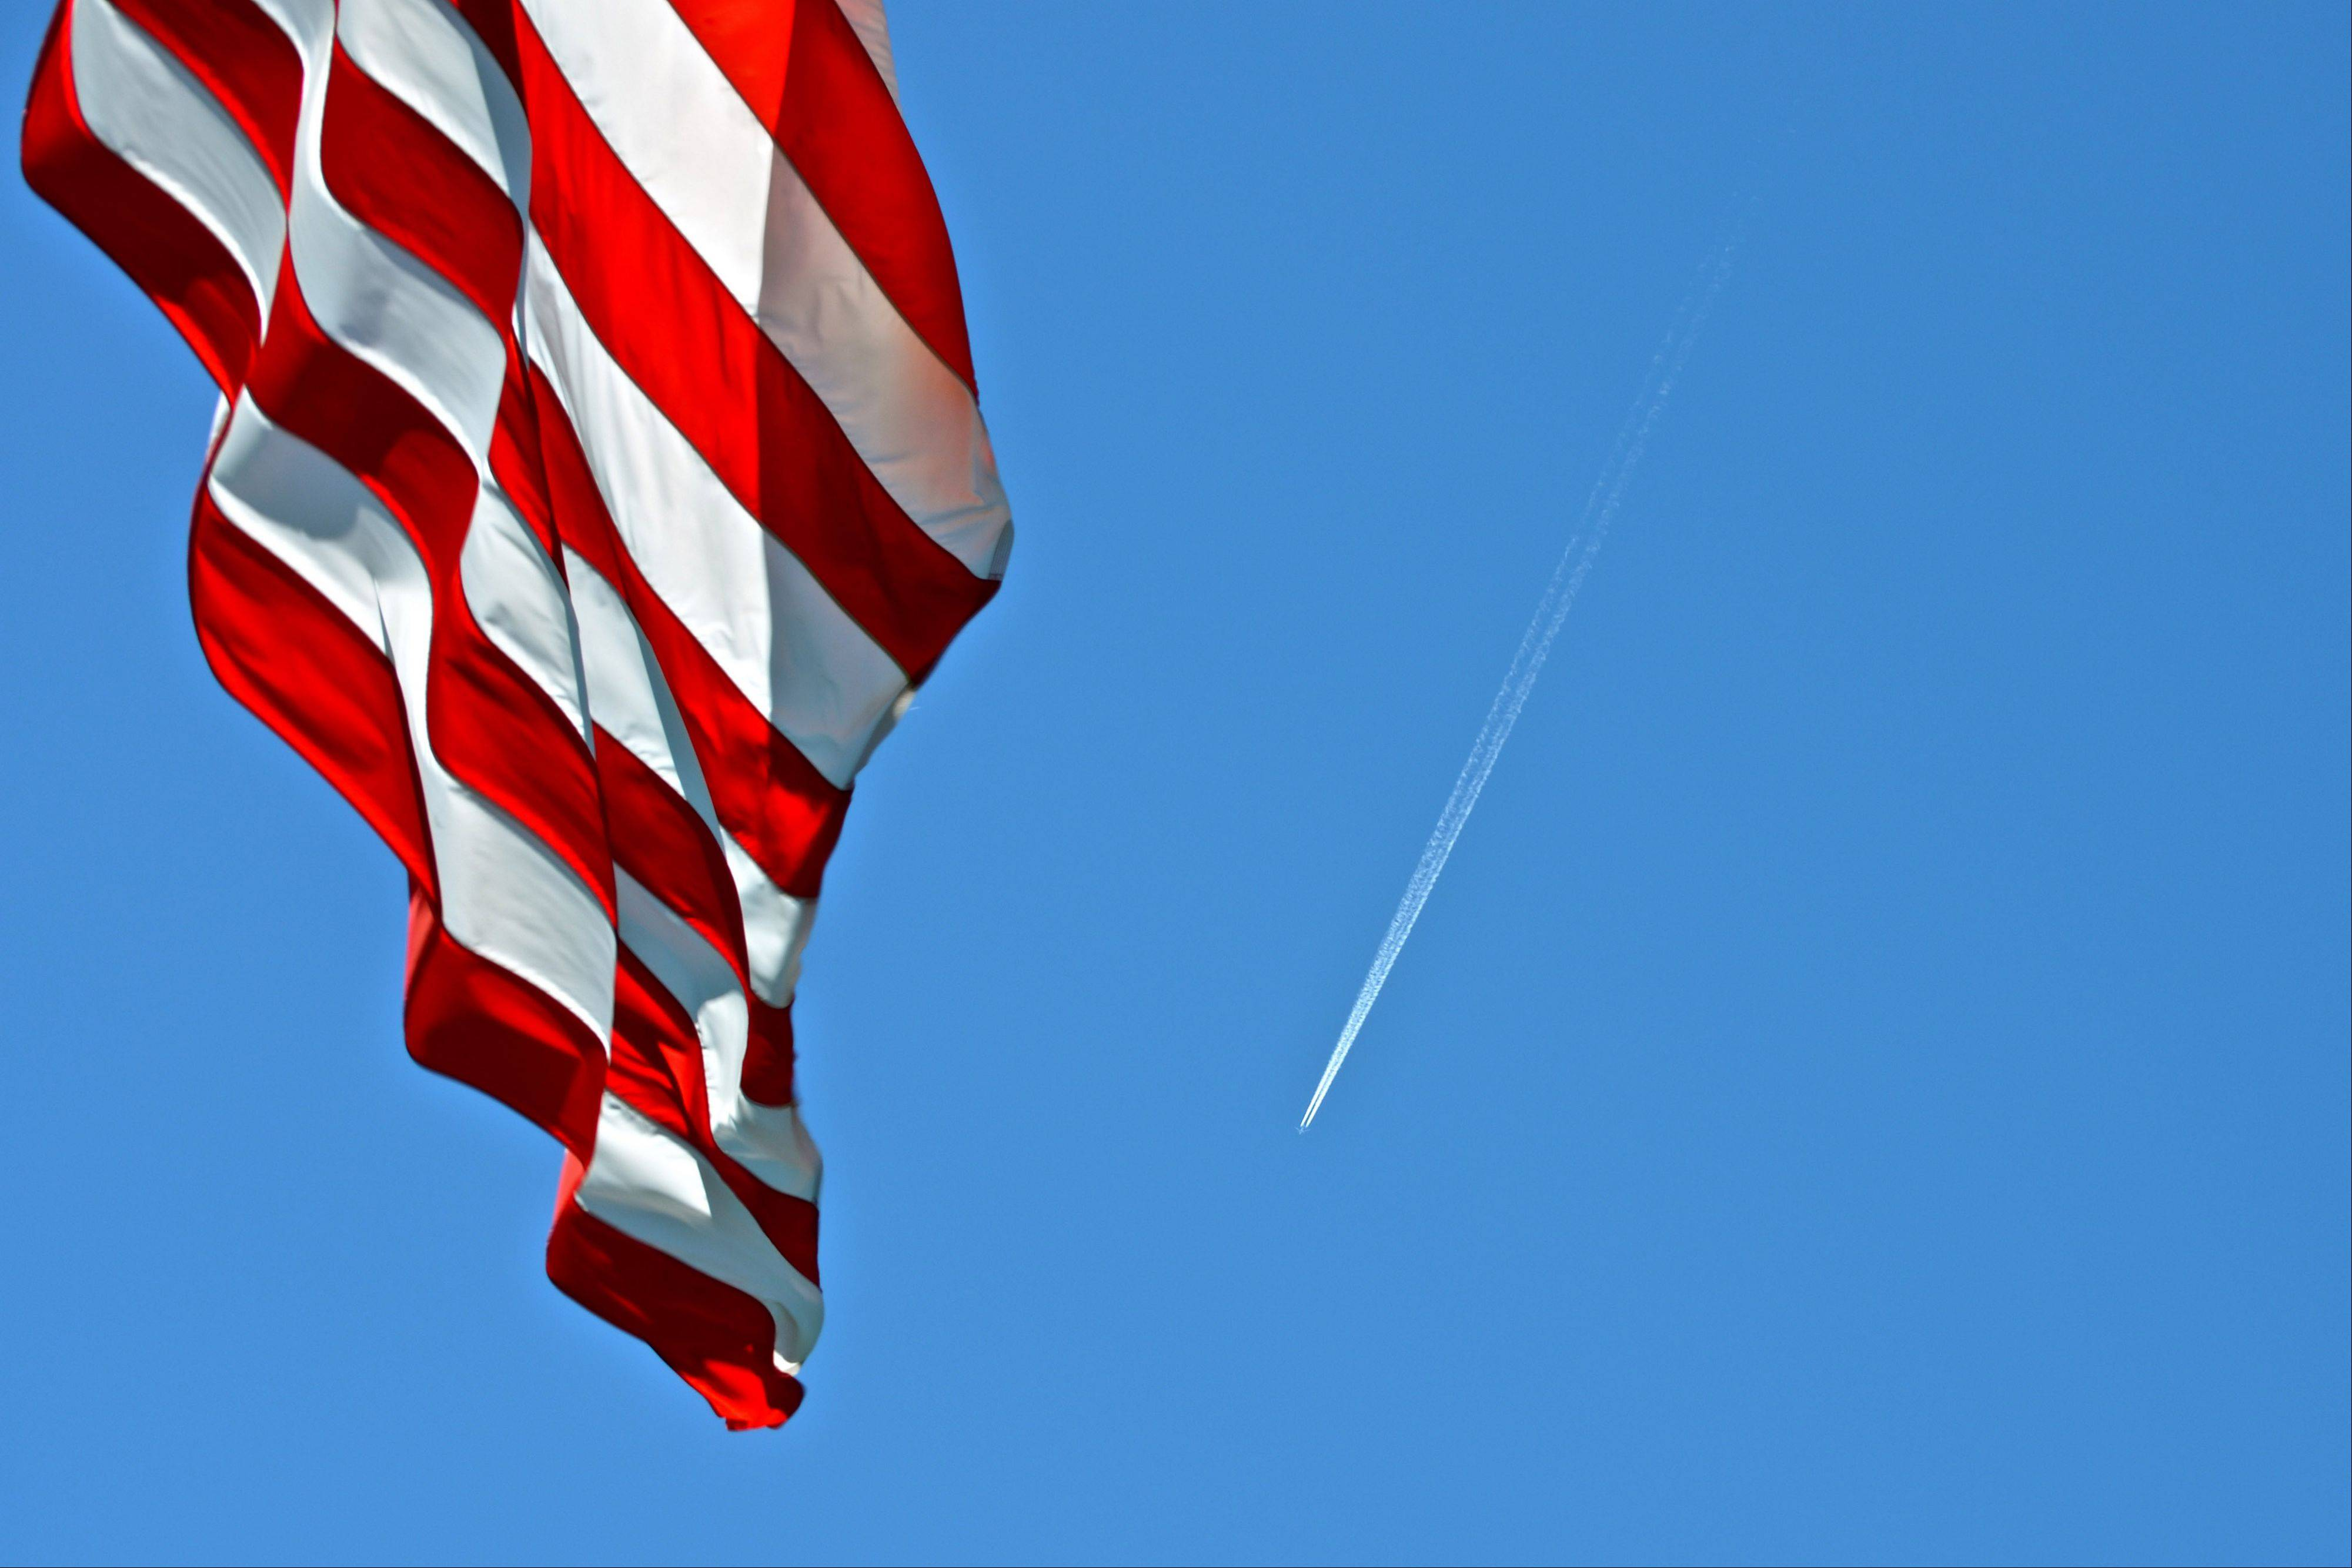 This photo was taken on the grounds of Cantigny Gardens and 1st Division Museum. When leaving I glanced back at the flag and noticed the jet contrail. An example of being in the right place at the right time.